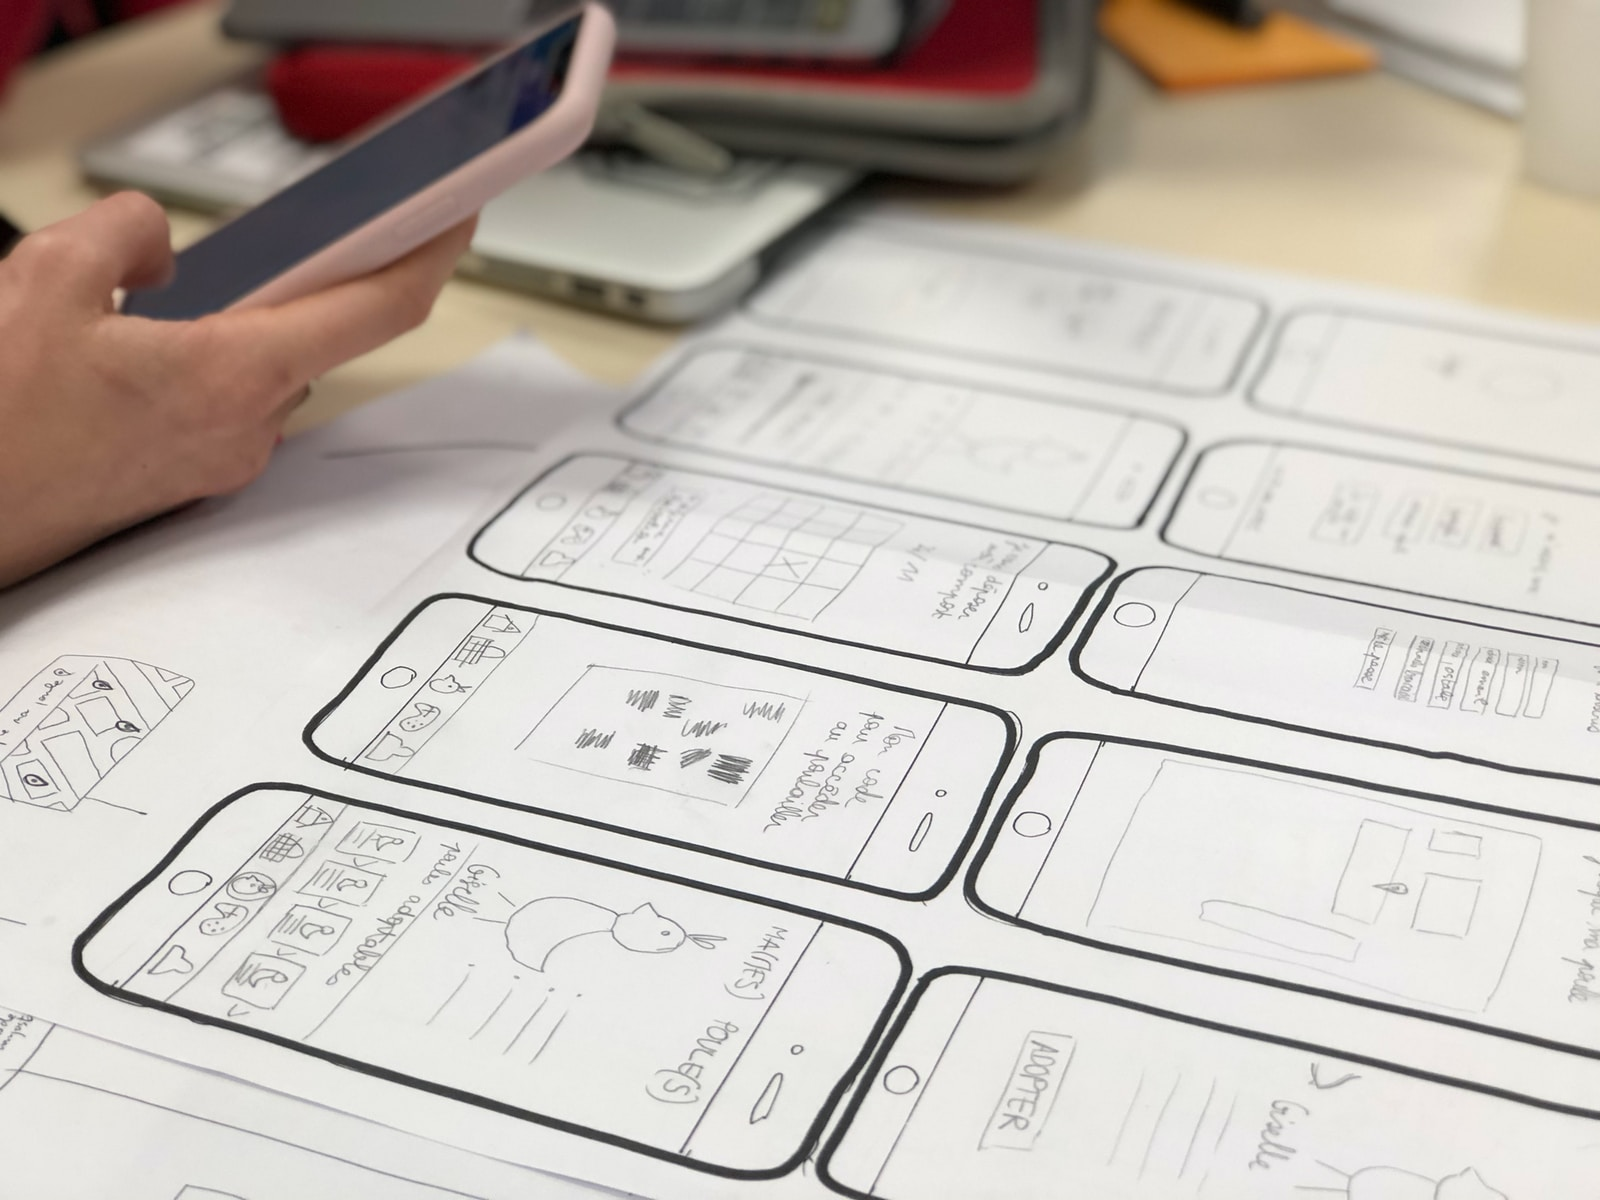 UX Writing And How It Plays An Important Role While You Design Anything